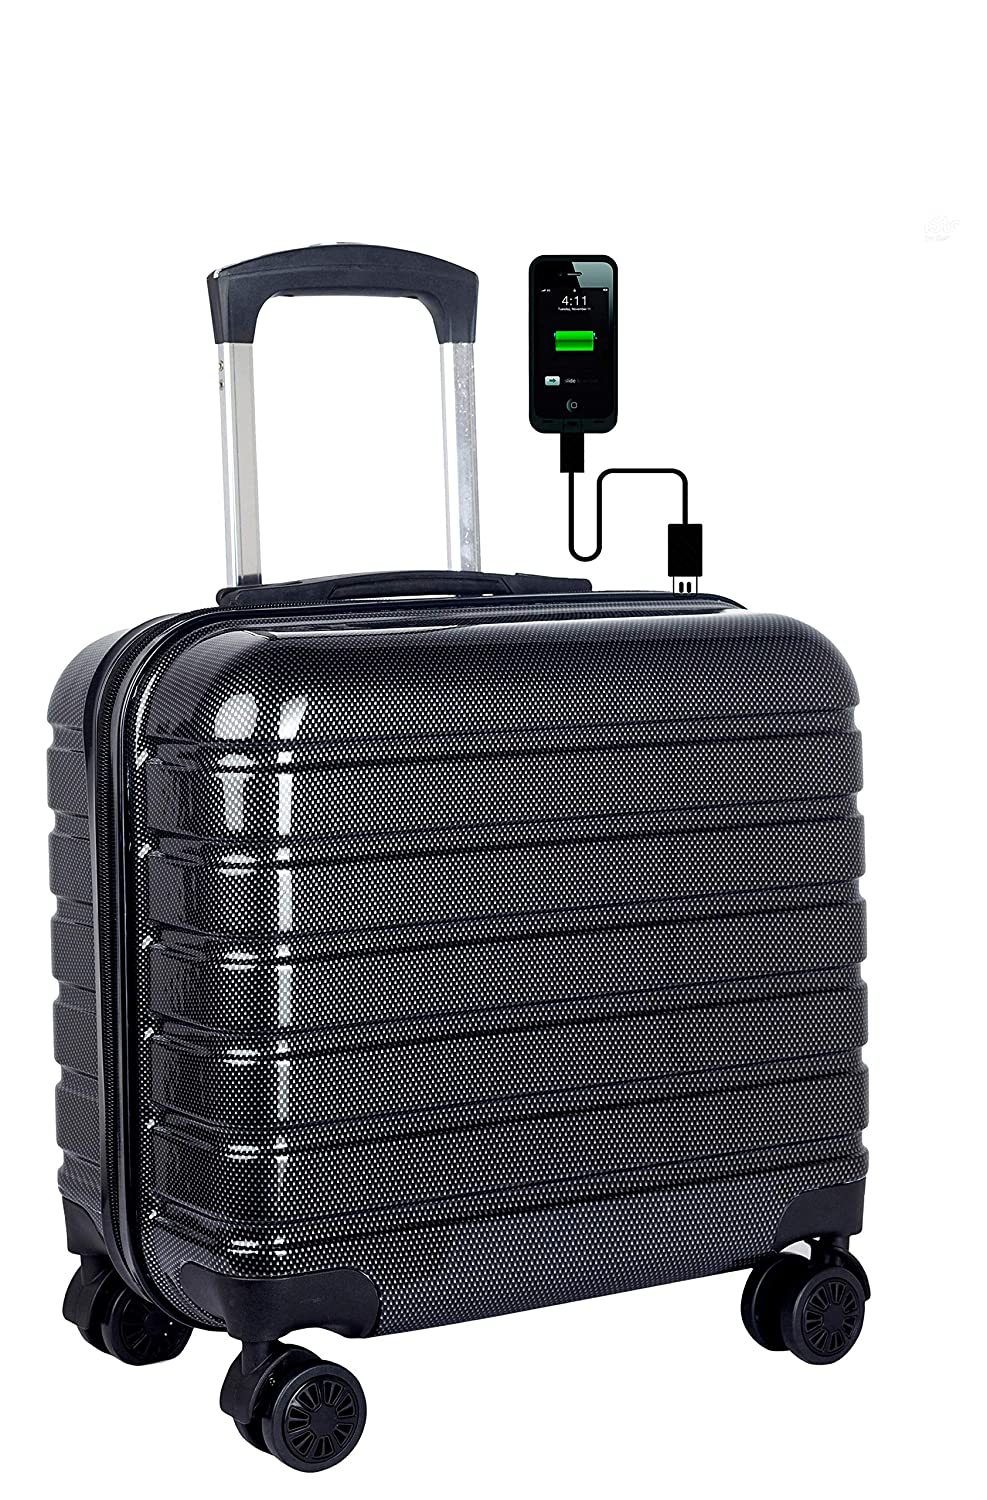 Roller bag with USB for your father